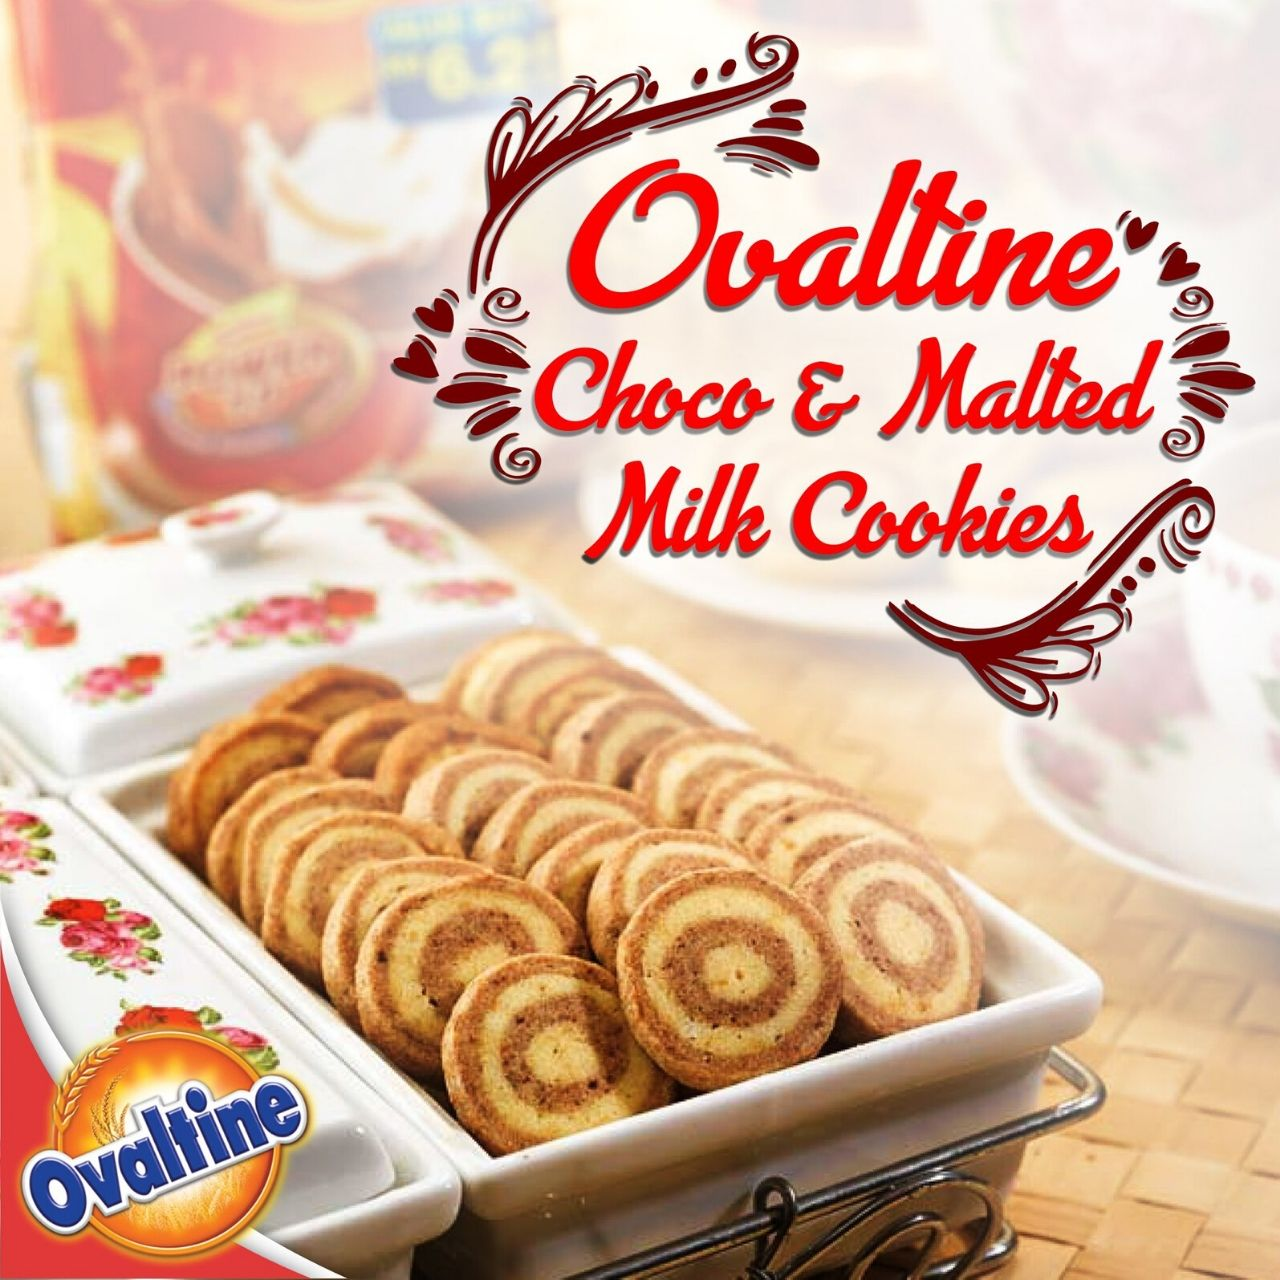 Ovaltine Choco & Malted Milk Cookies-1